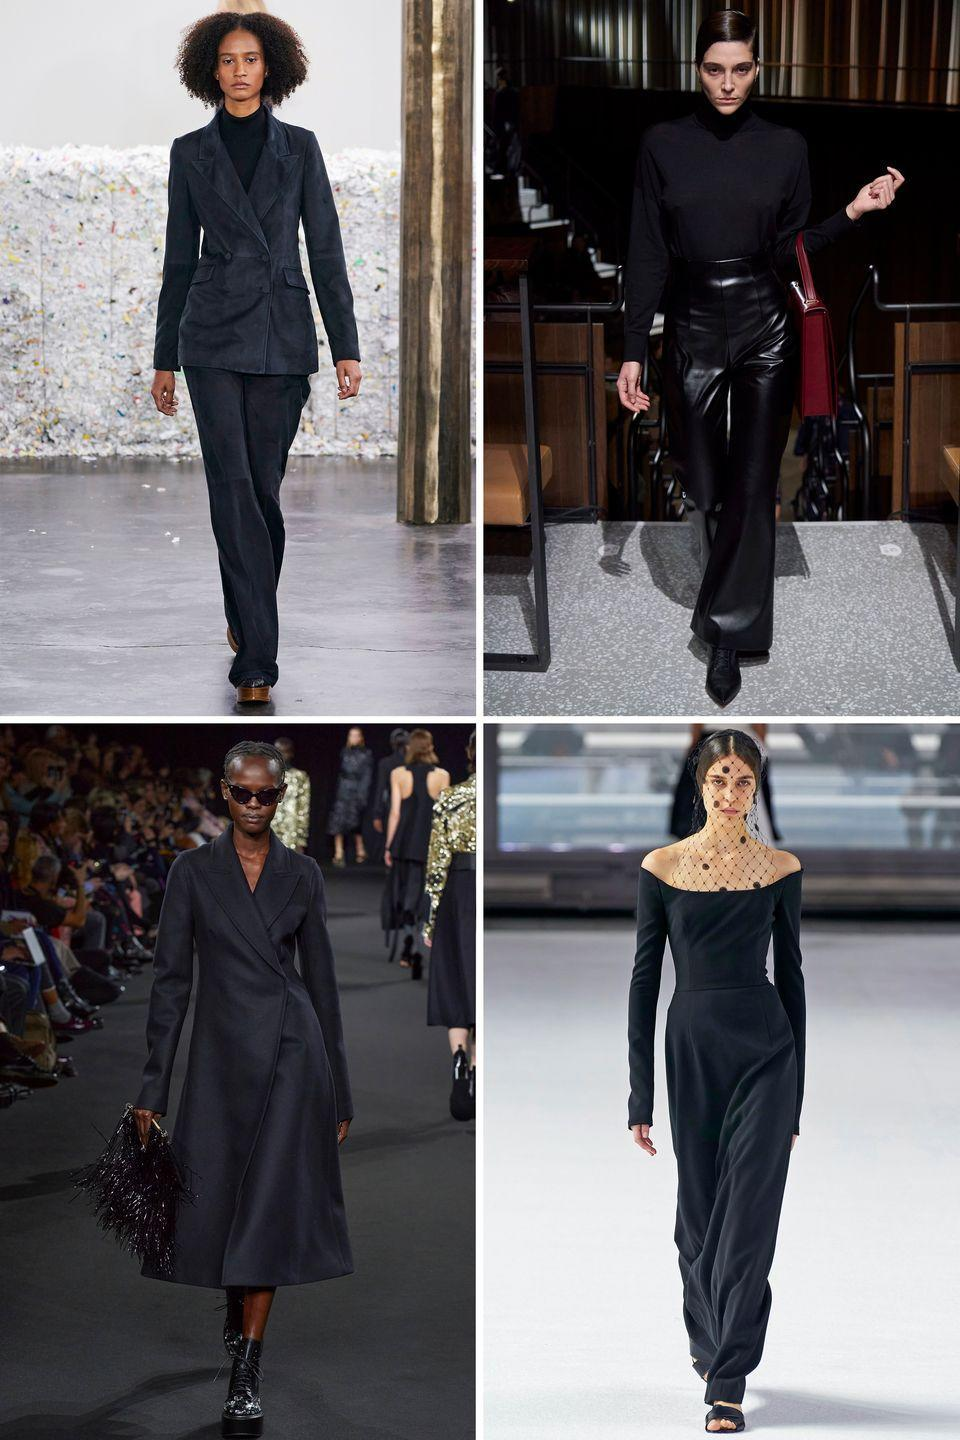 <p>Monochromatic darks from head to toe was a theme in many collections from Rochas to Carolina Herrera this season. Try the trend in leather, suede, and even knitwear. And trust that investing in staples from your favorite designers will last well beyond this season. </p><p><em>Clockwise from top left: Gabriela Hearst, Emilia Wickstead, Carolina Herrera, Rochas</em></p>